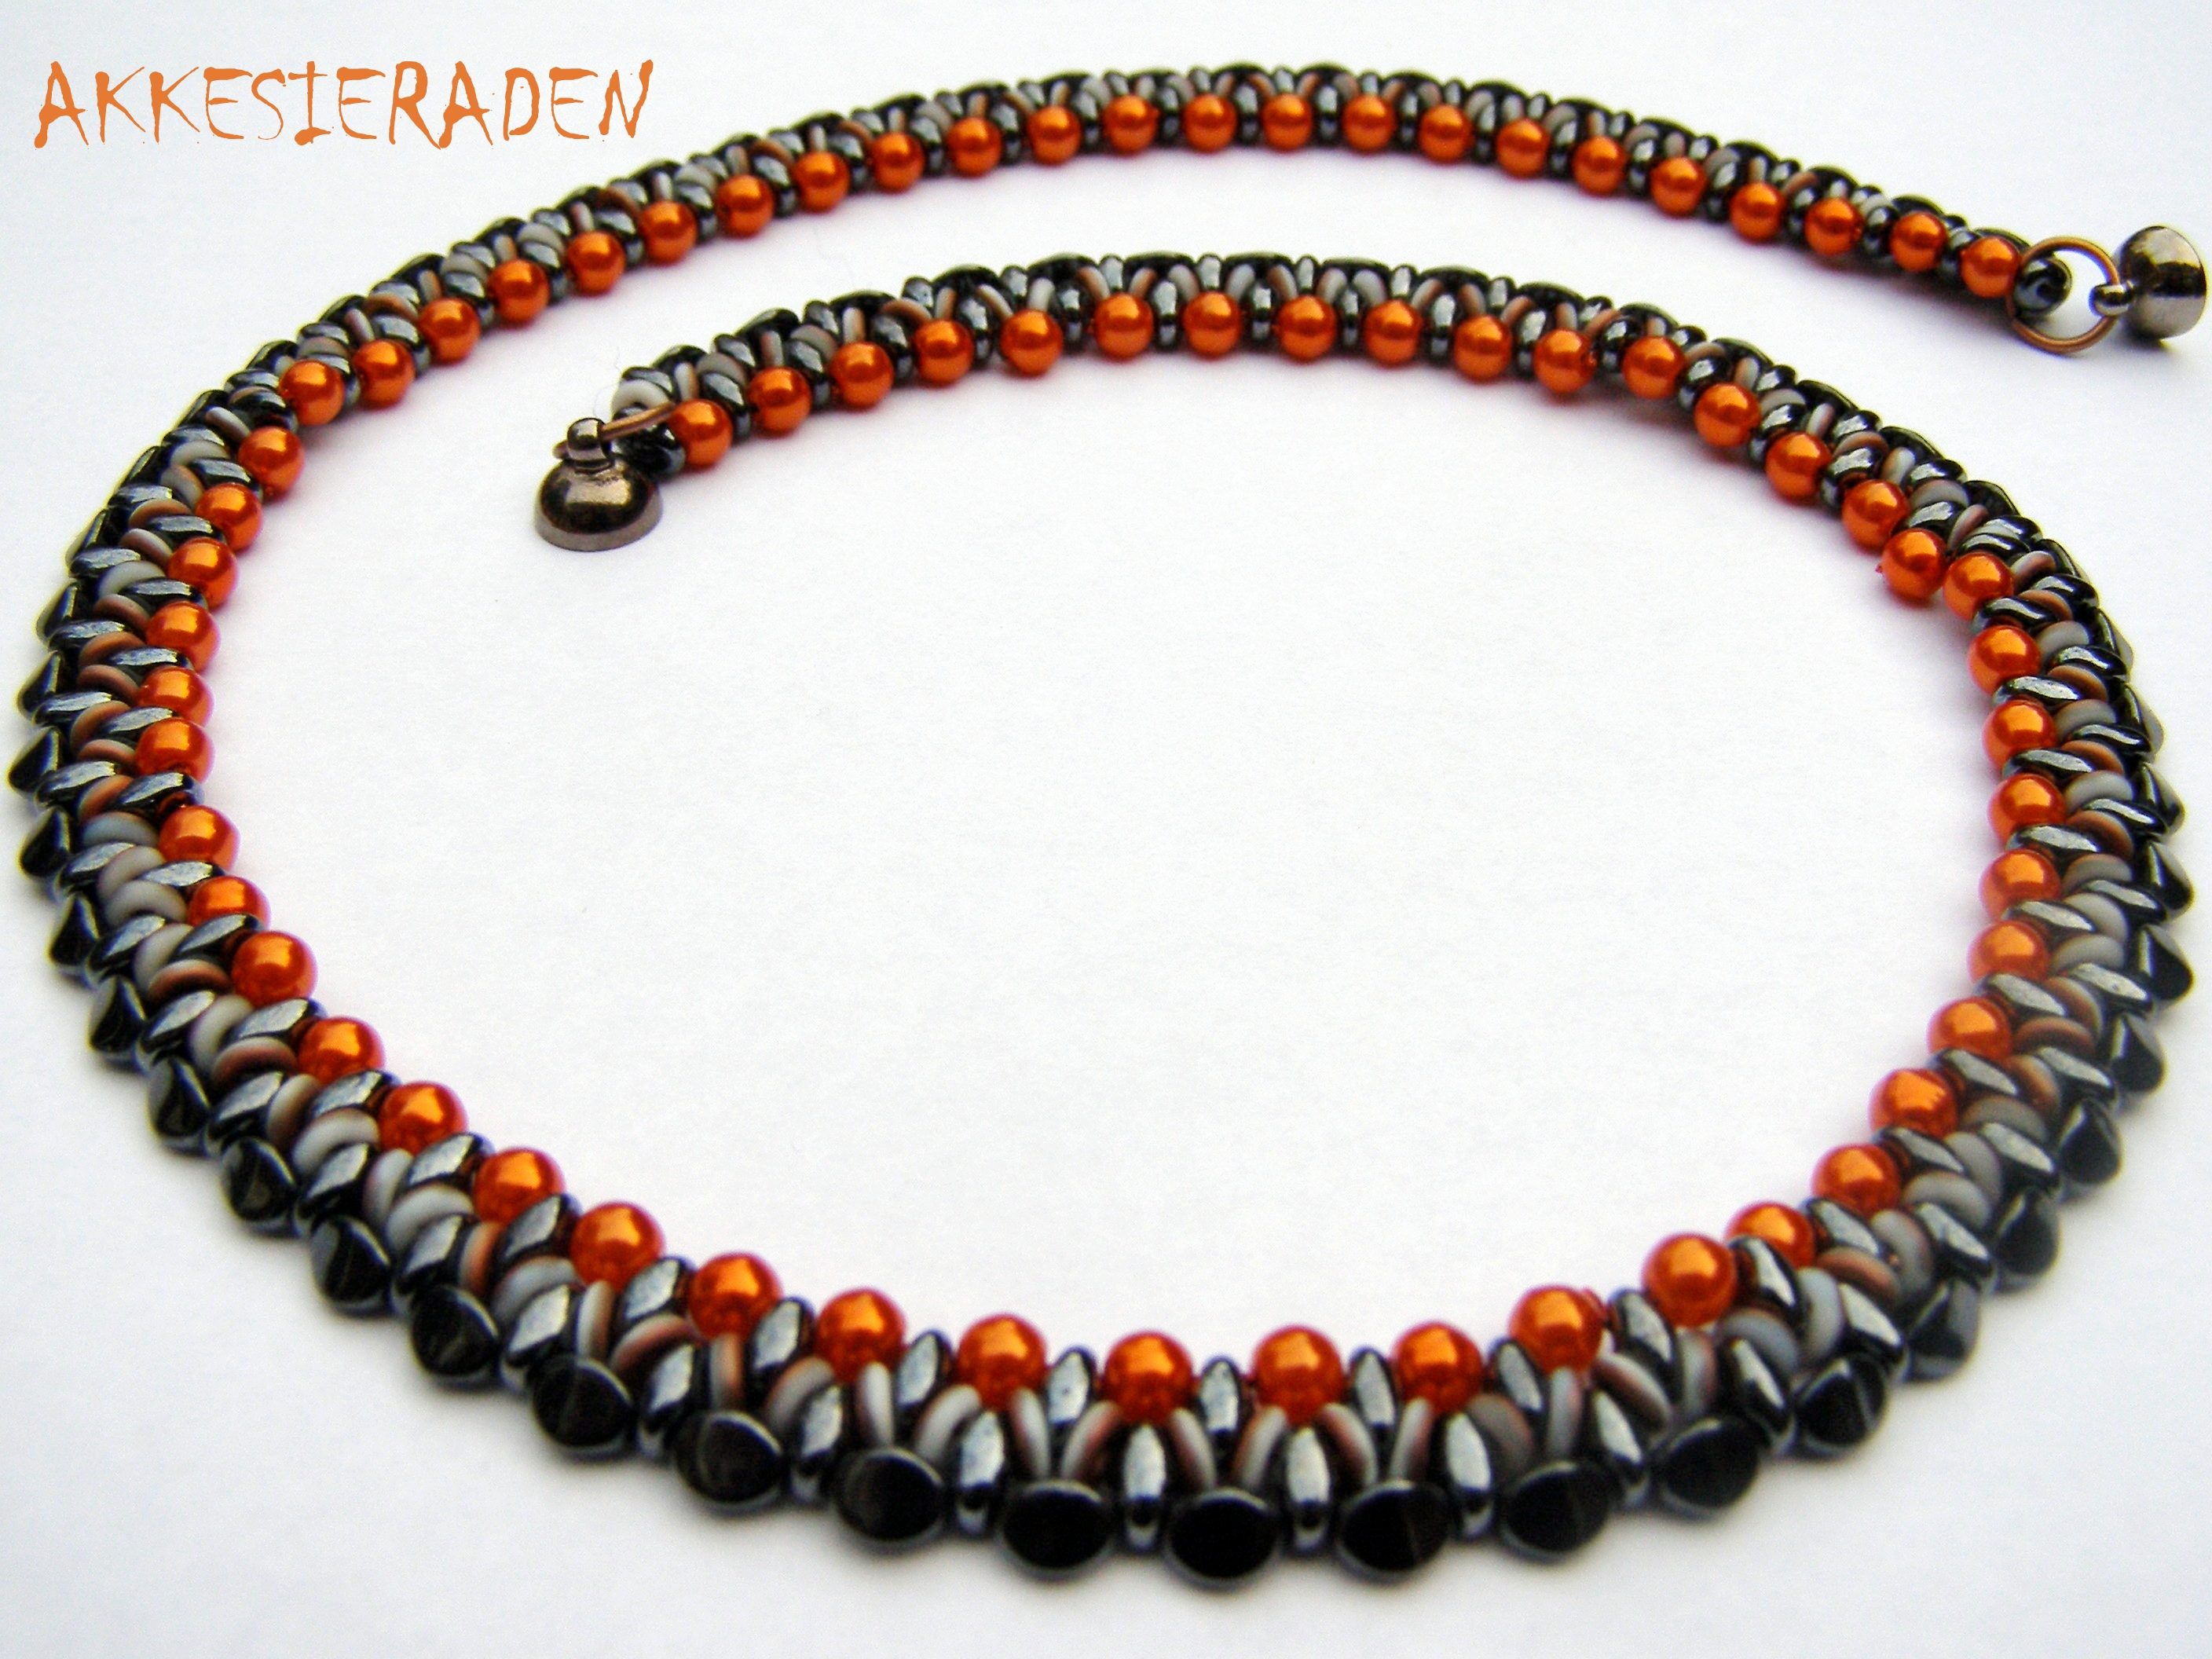 fresh beads love and new class a approach of bead will burst adorn you design sun